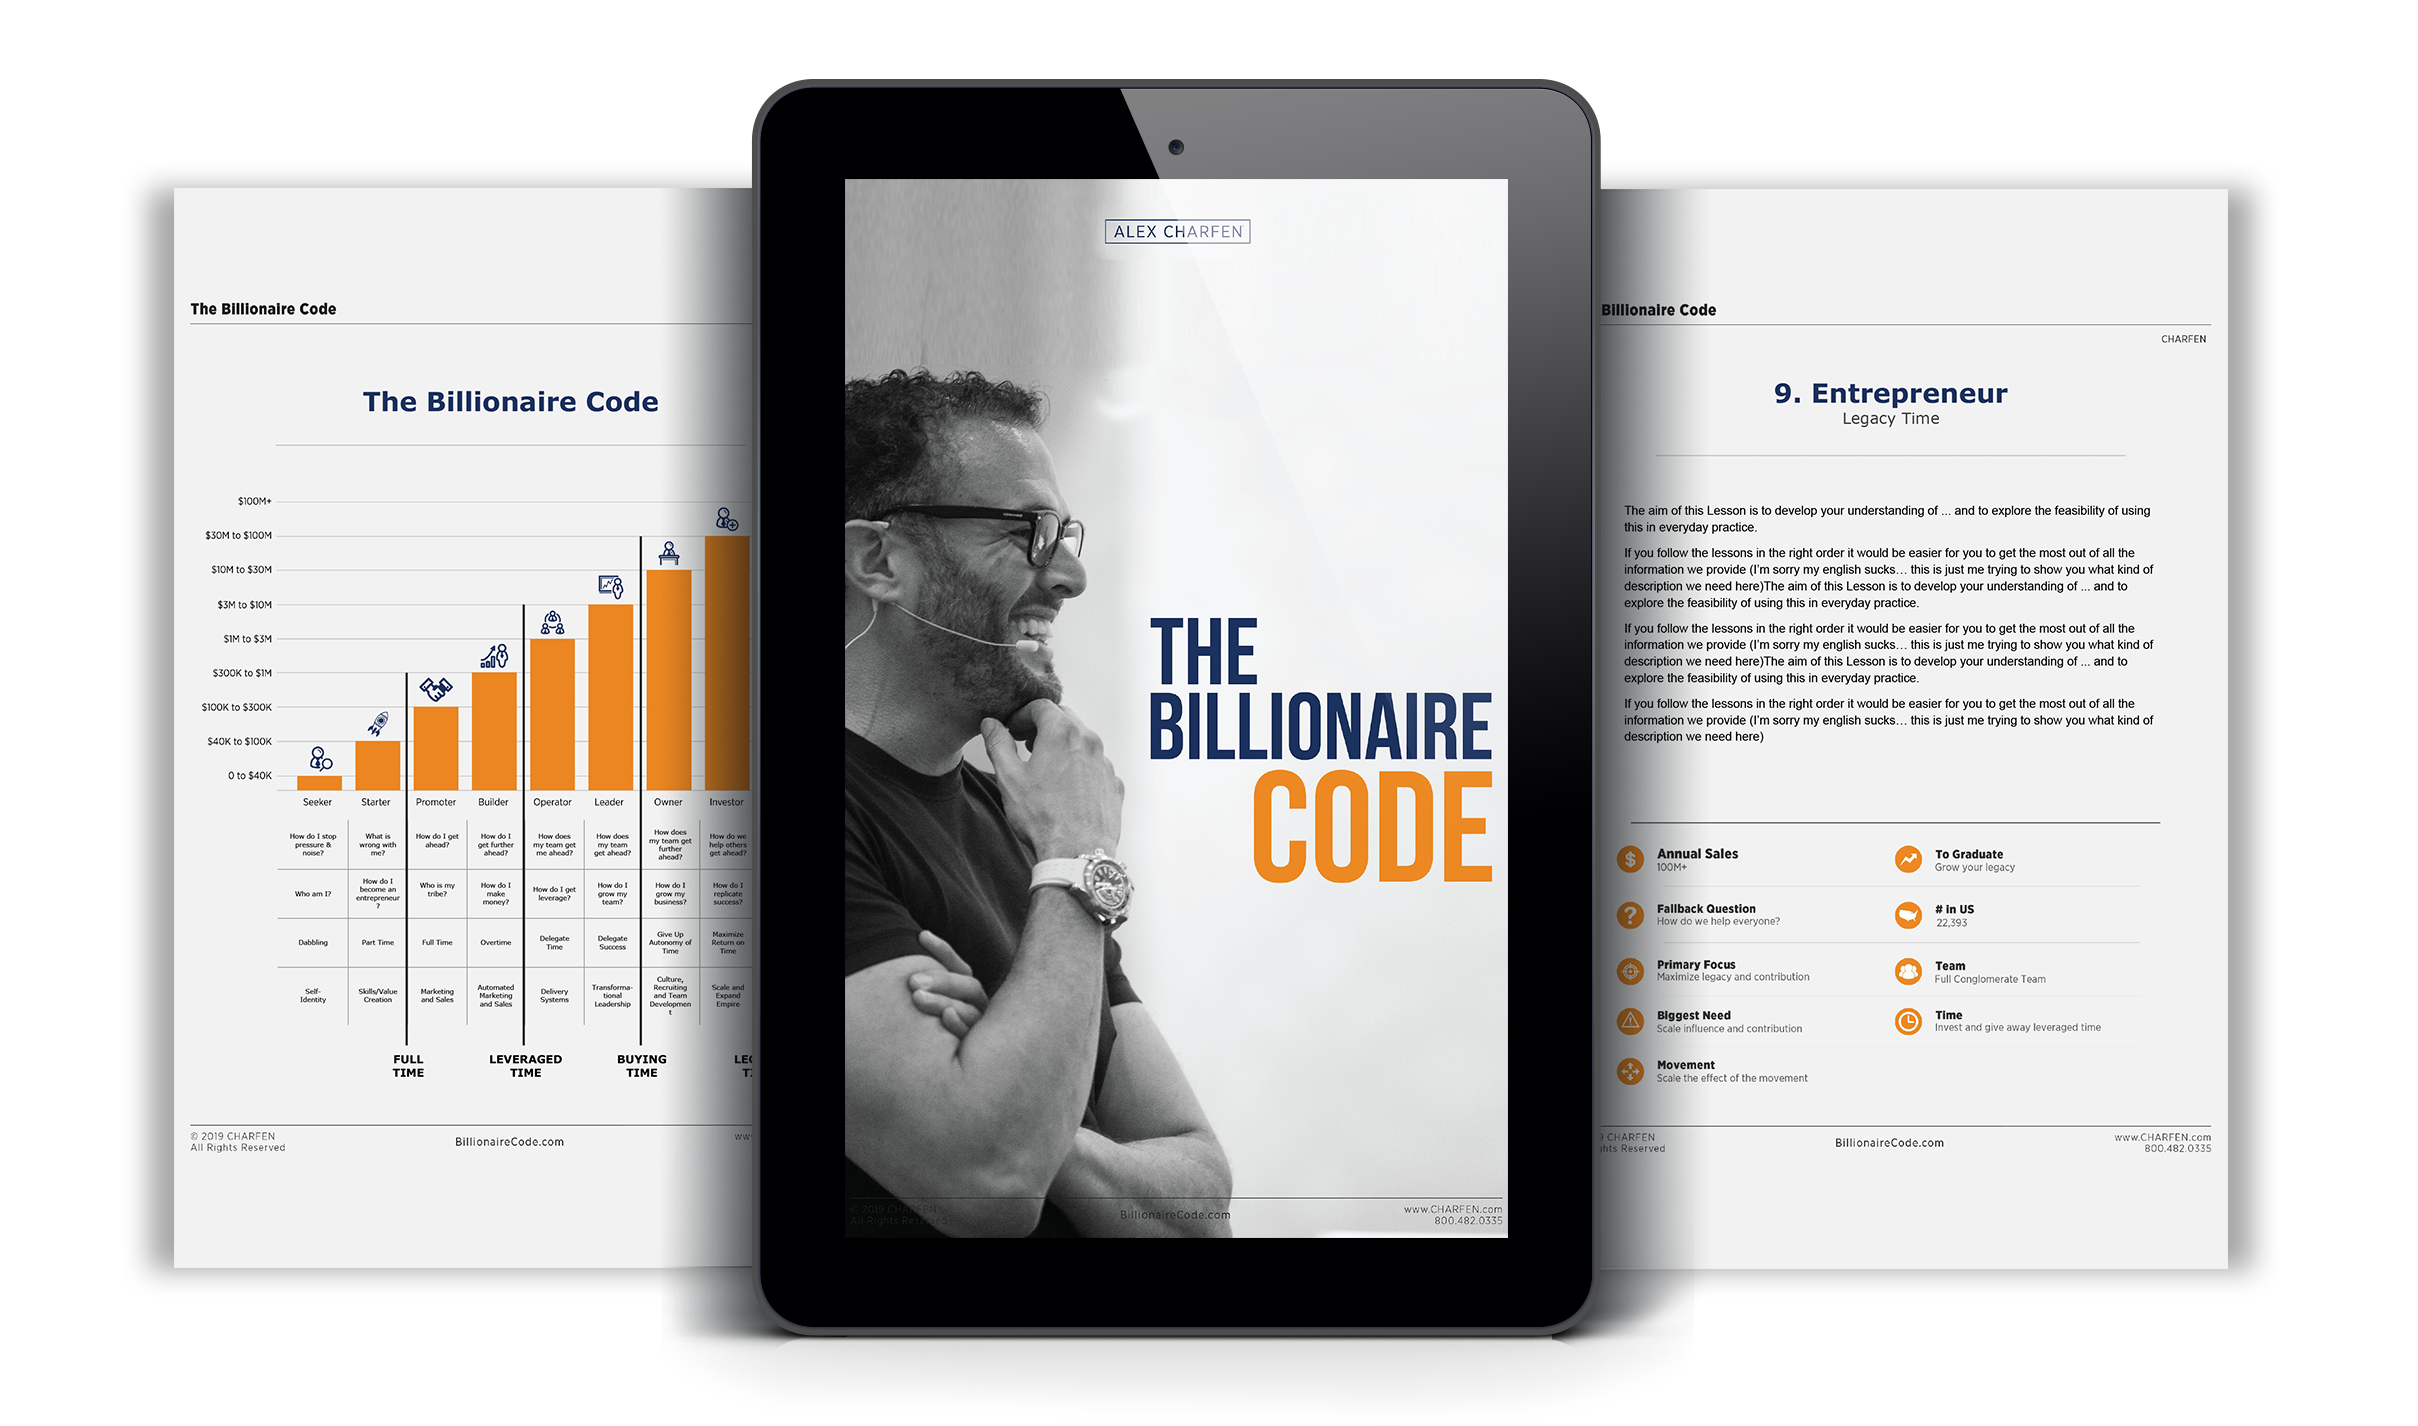 Pic of Billionaire Code Decoded and link to BillionaireCode.com